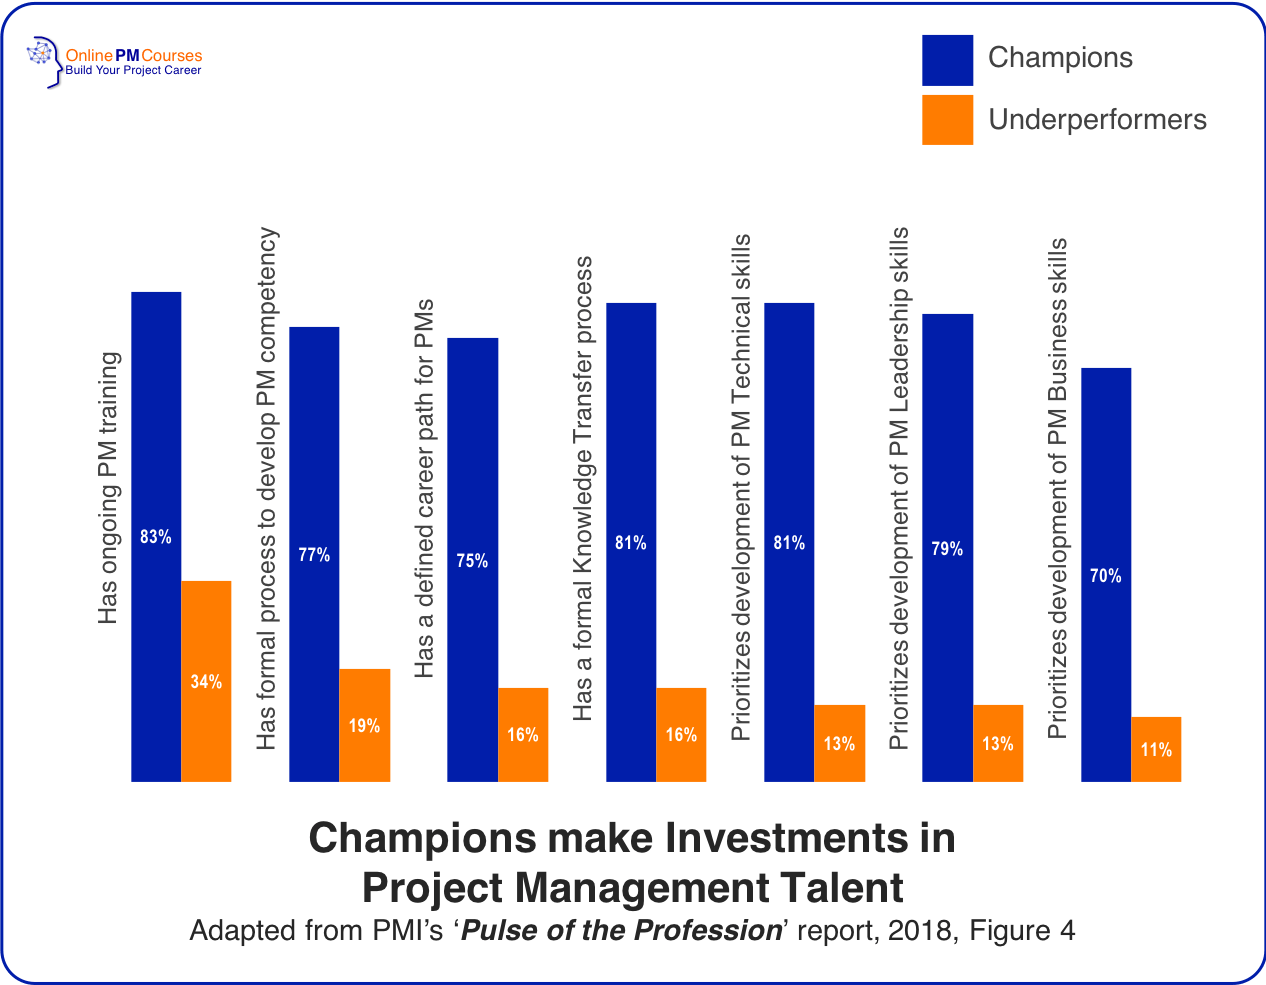 Champions make Investments in Project Management Talent